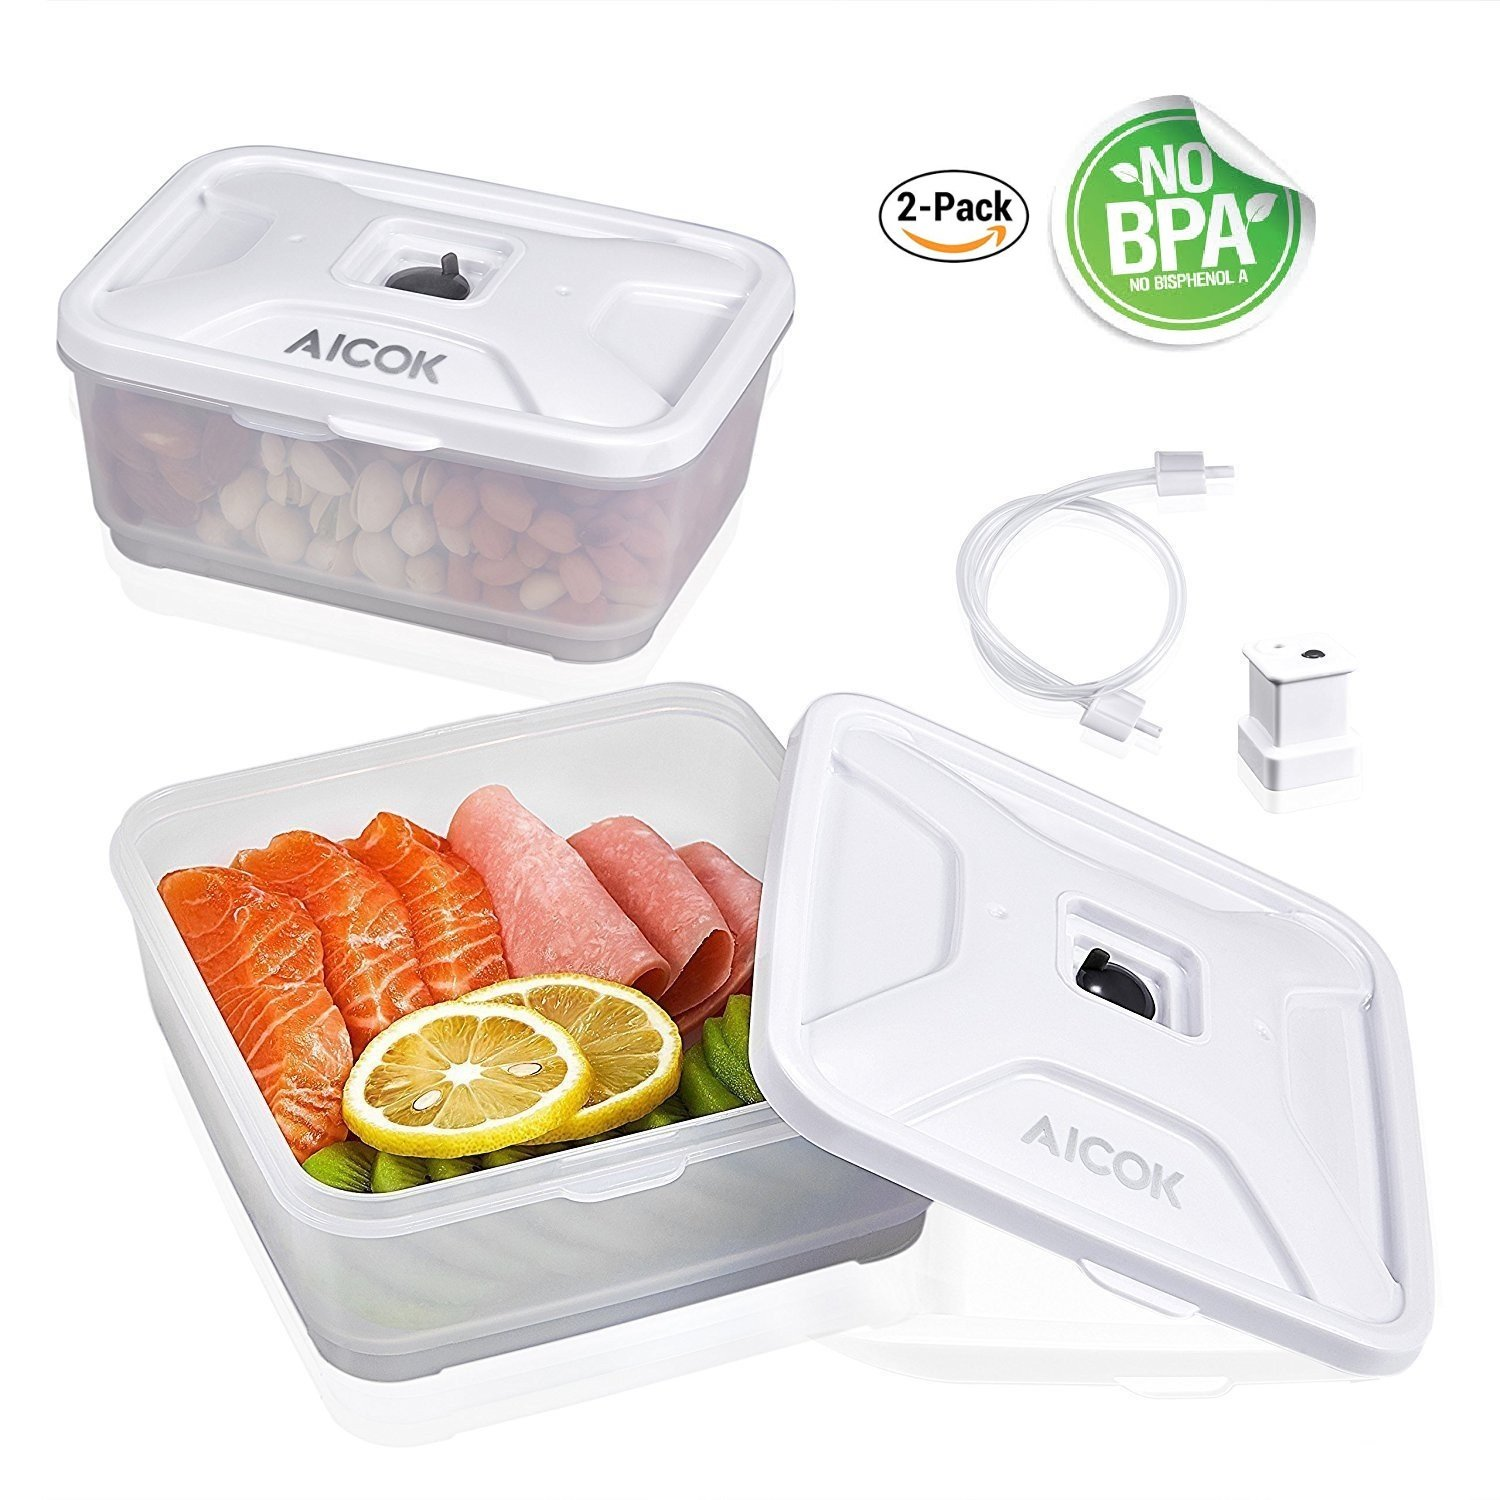 a423c3e1a742 Food Storage Containers Aicok Vacuum Container for Dishwasher, Freezer,  Microwave, Airtight and 100% Liquid Proofed, BPA Free Containers with Snap  ...